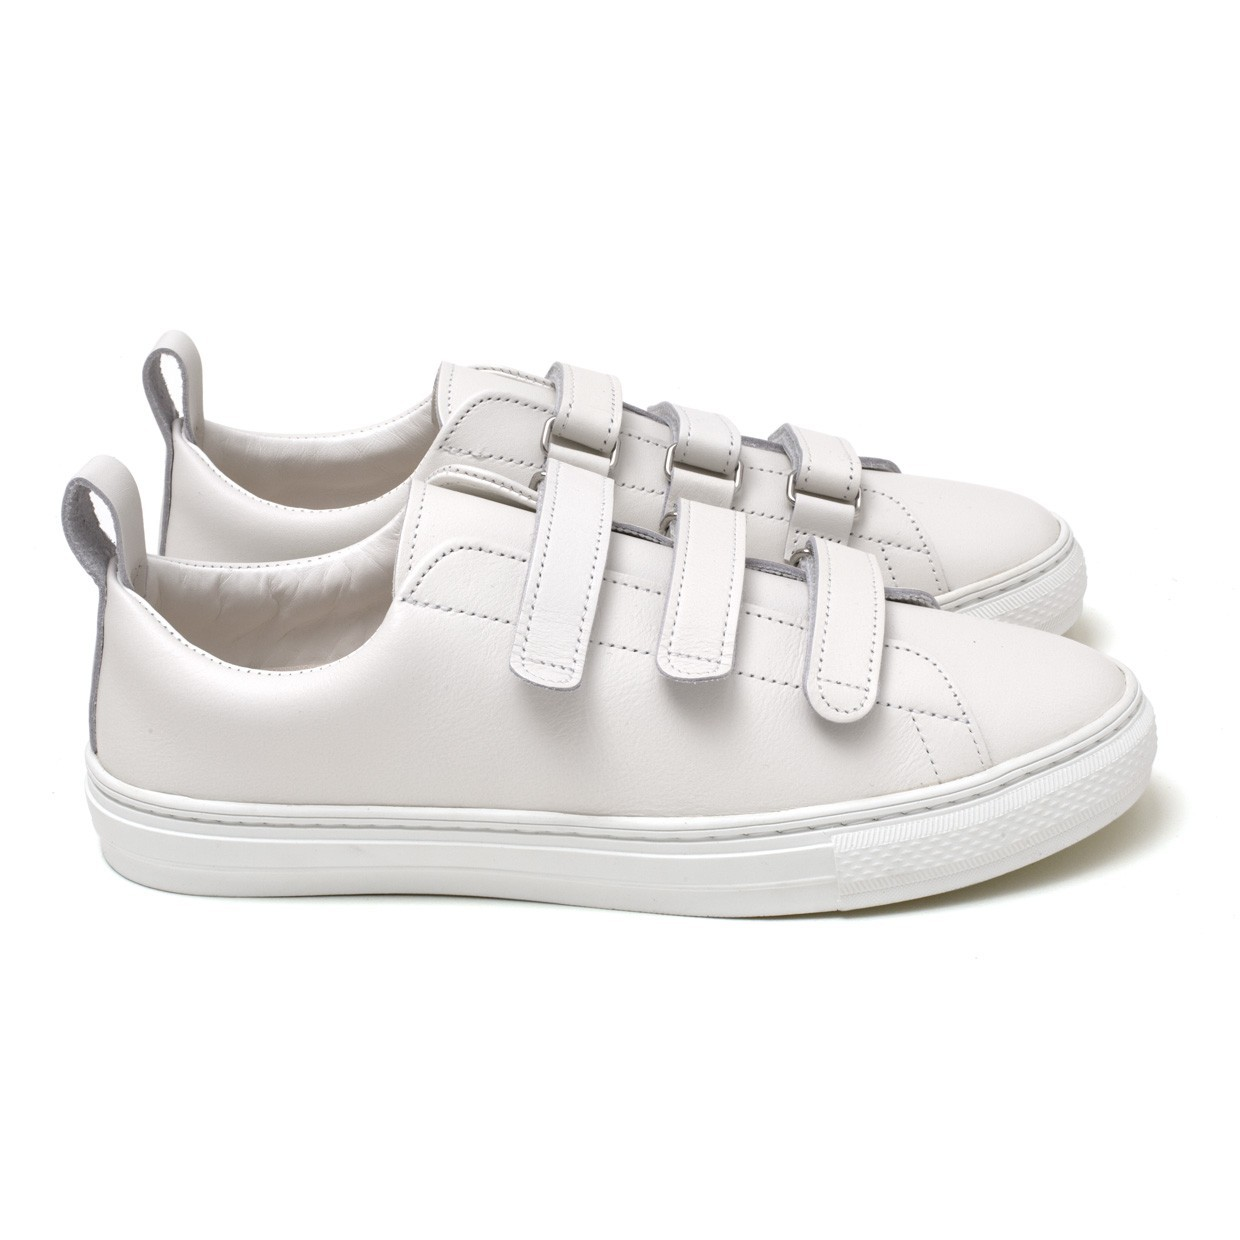 Bull Terrier Smooth Chubby 3 Strap Blanche